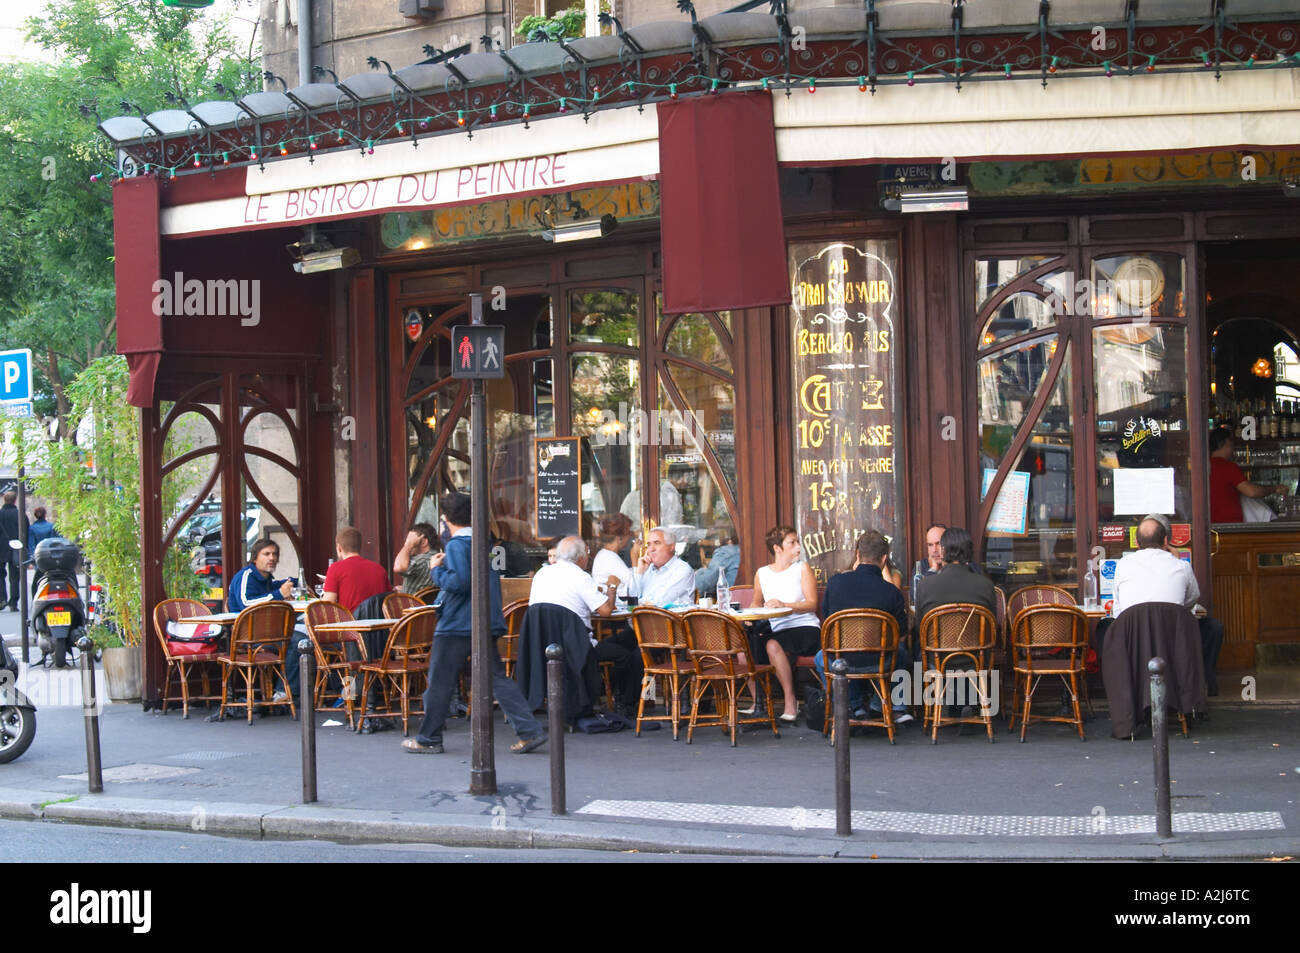 Terrasse Café Le Bistrot Du Peintre Cafe Bar Terrasse Terasse Outside